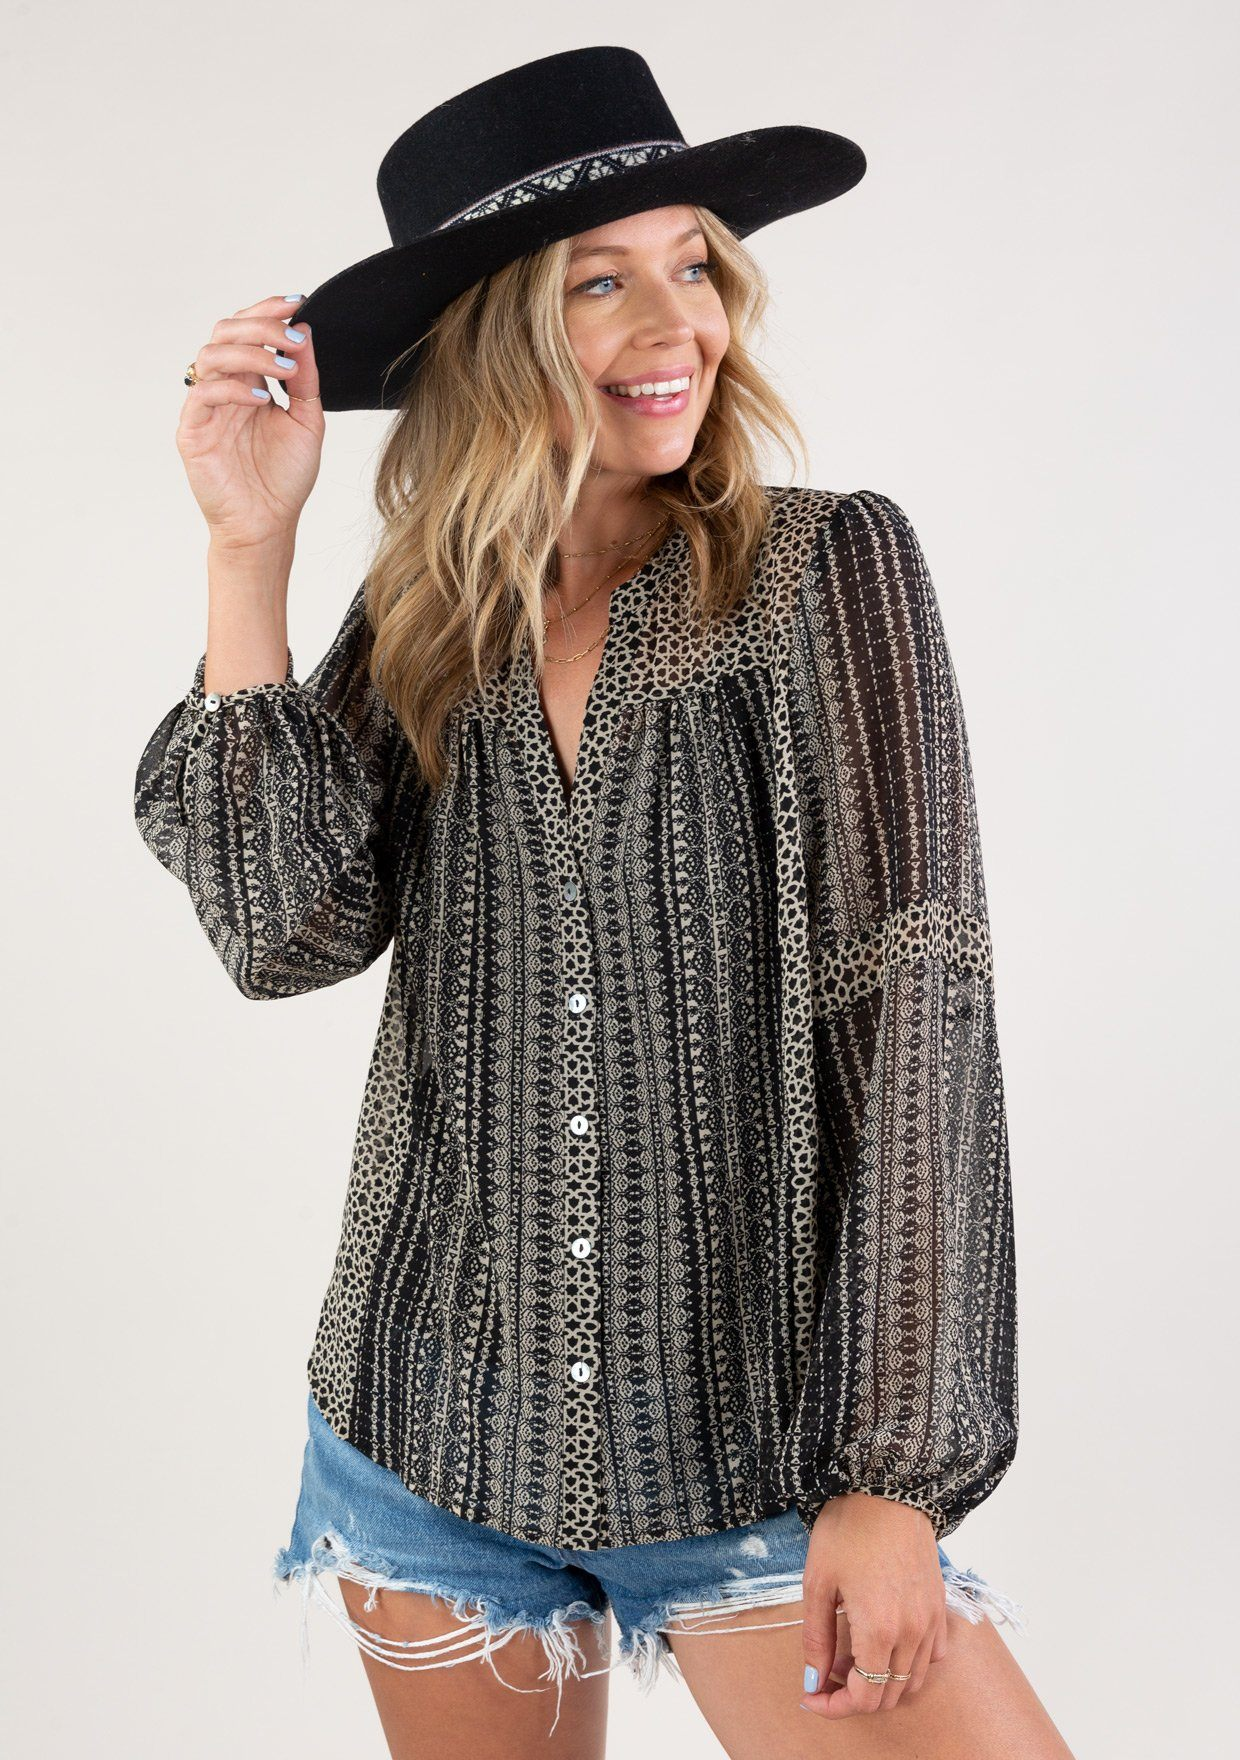 [Color: Black Cream] A versatile bohemian blouse in a mixed geometric print that will transition from Summer to Fall with ease. Featuring flattering voluminous sleeves with a single button wrist cuff closure, an easy button up front, and contrast trim details throughout. Pair it with jeans for a casual vibe, or dress it up with a skirt for a bohemian chic look.